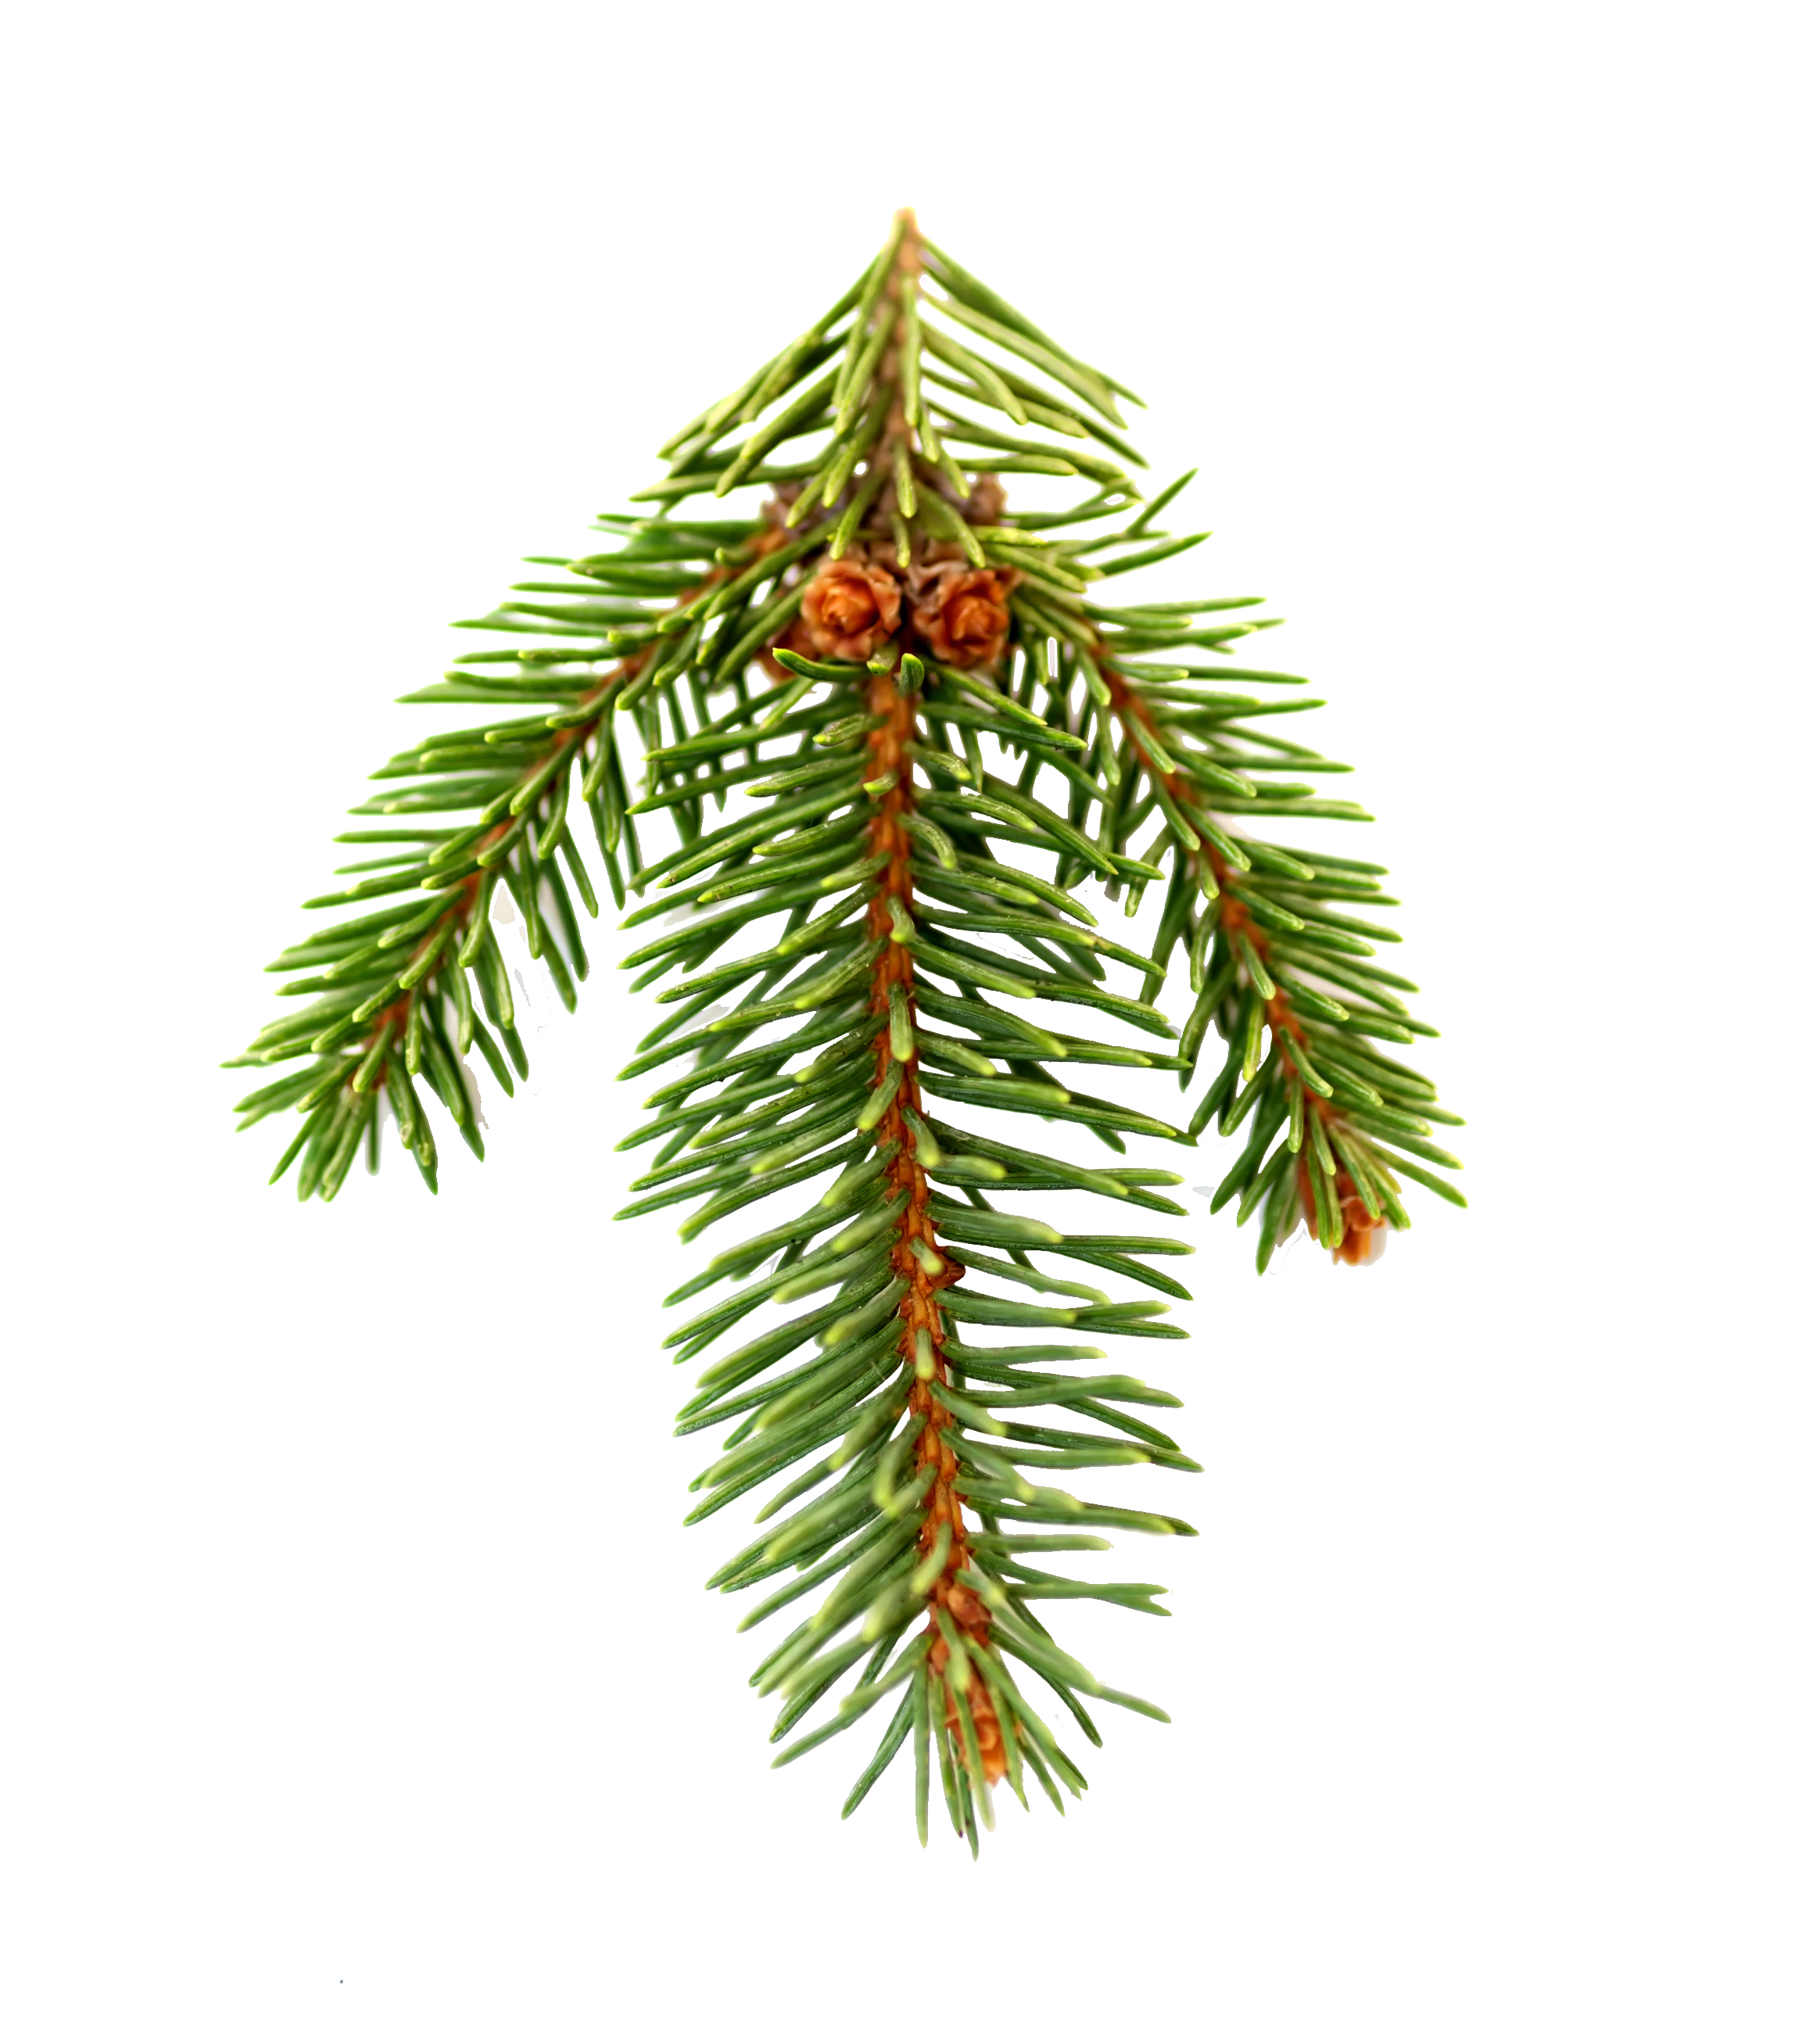 pine straw png